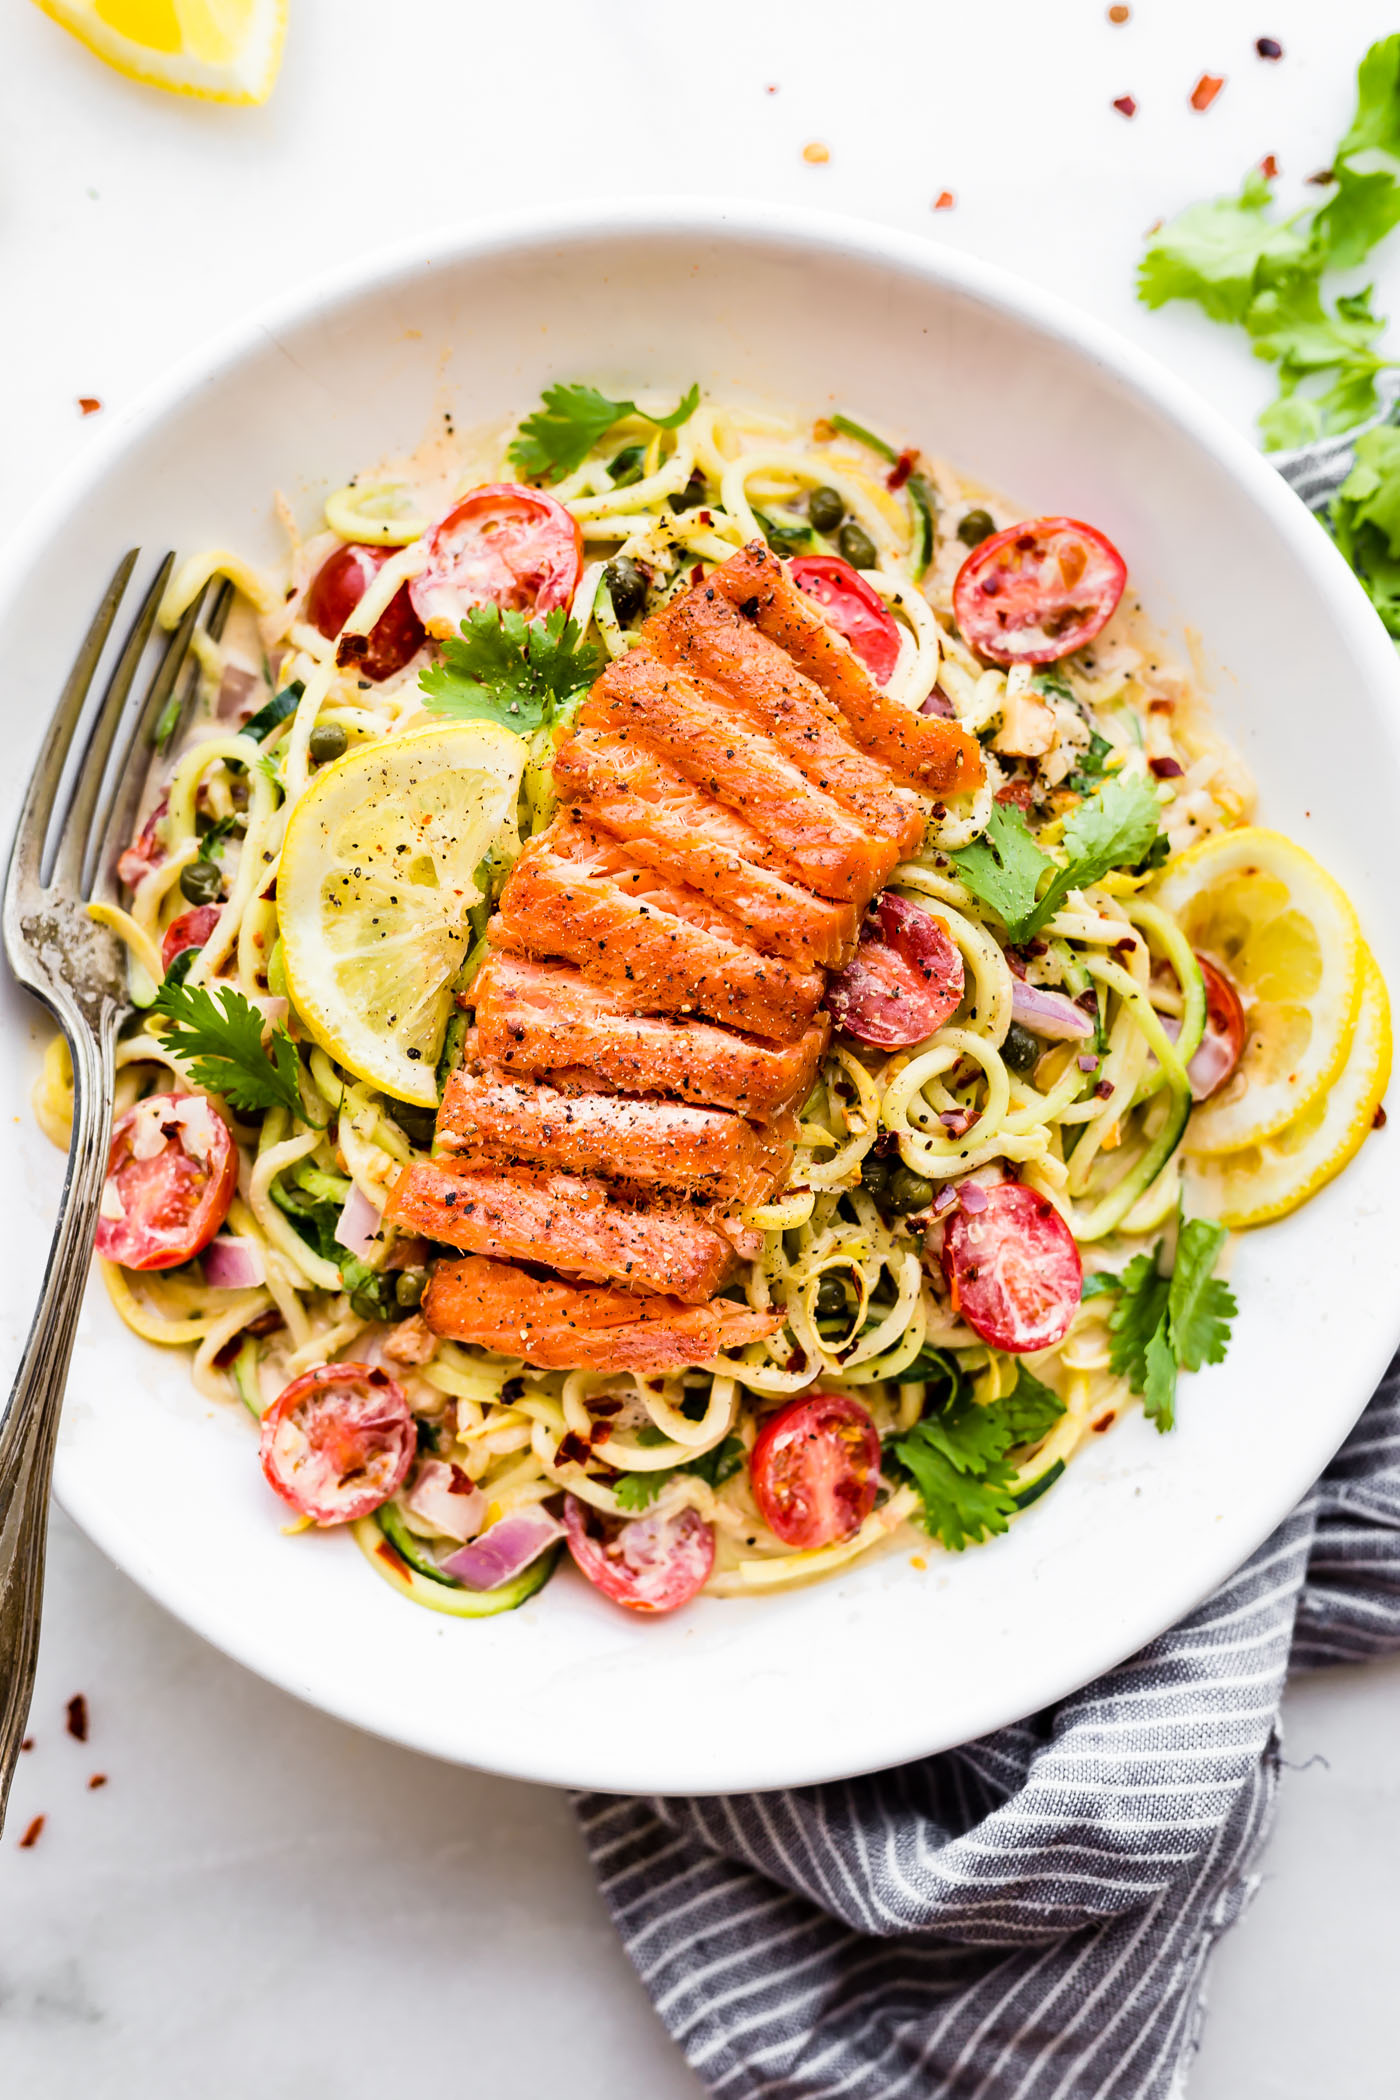 Cajun Smoked Salmon Zucchini Noodles Salad {Paleo, low carb friendly}